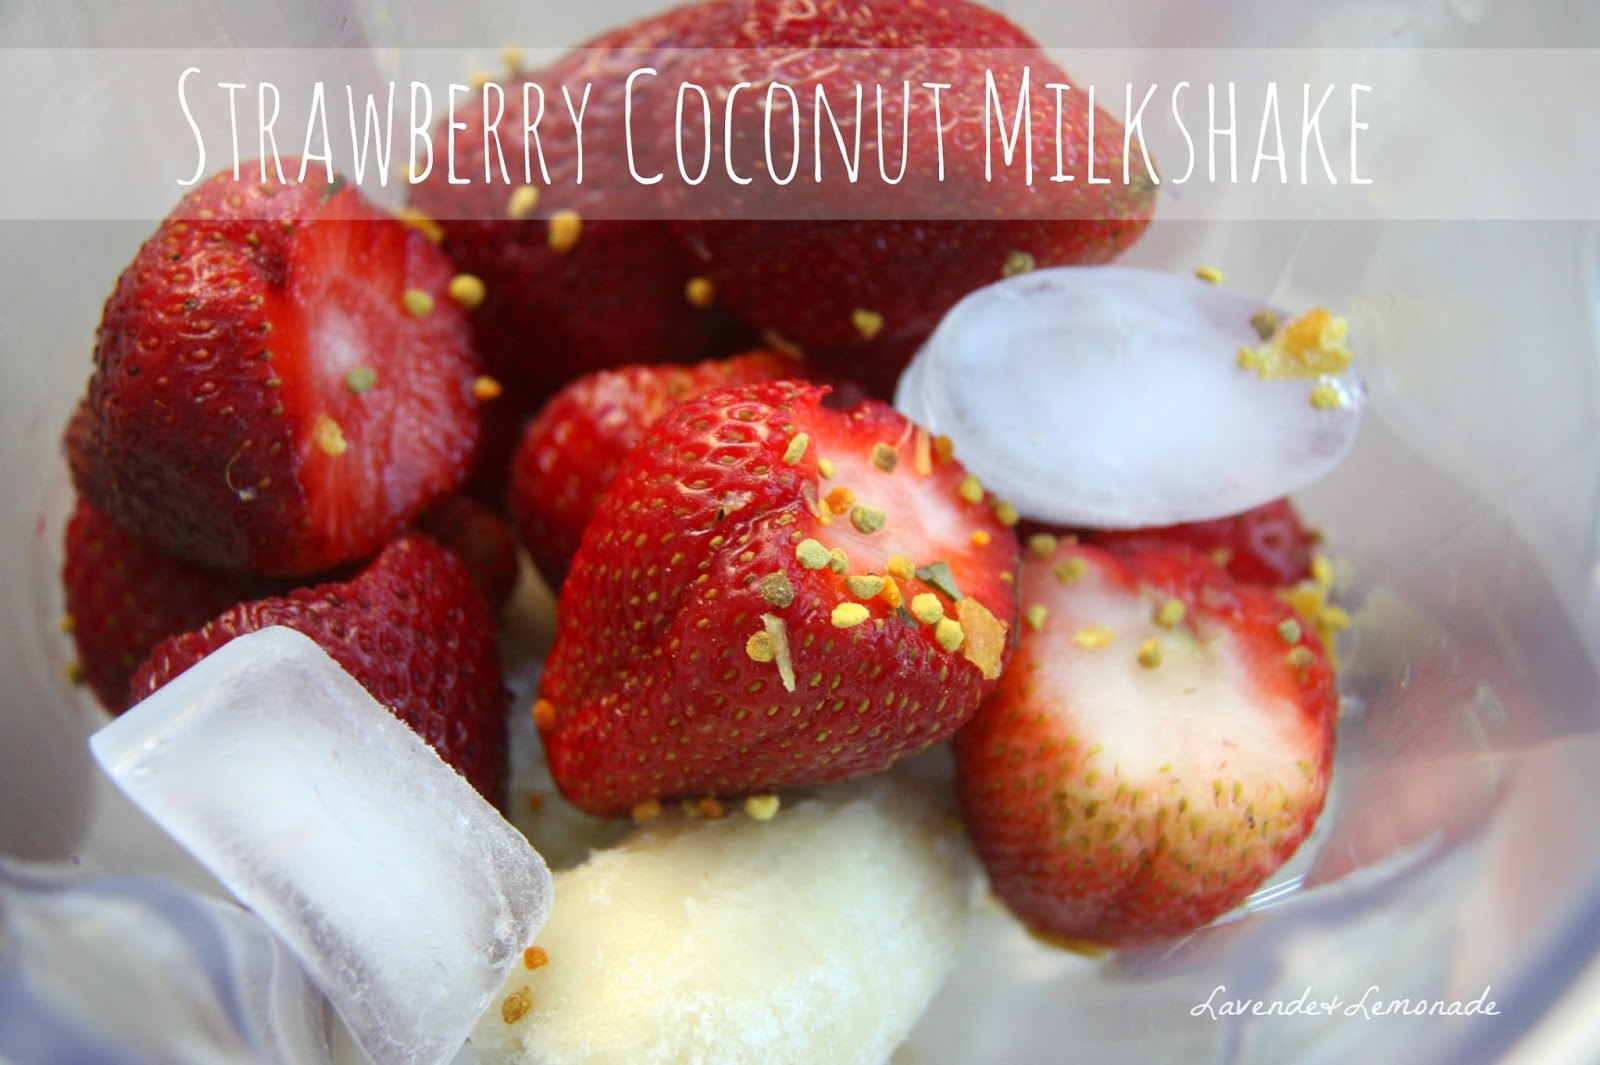 Strawberry Coconut Milkshake - AMAZING!  Gluten free